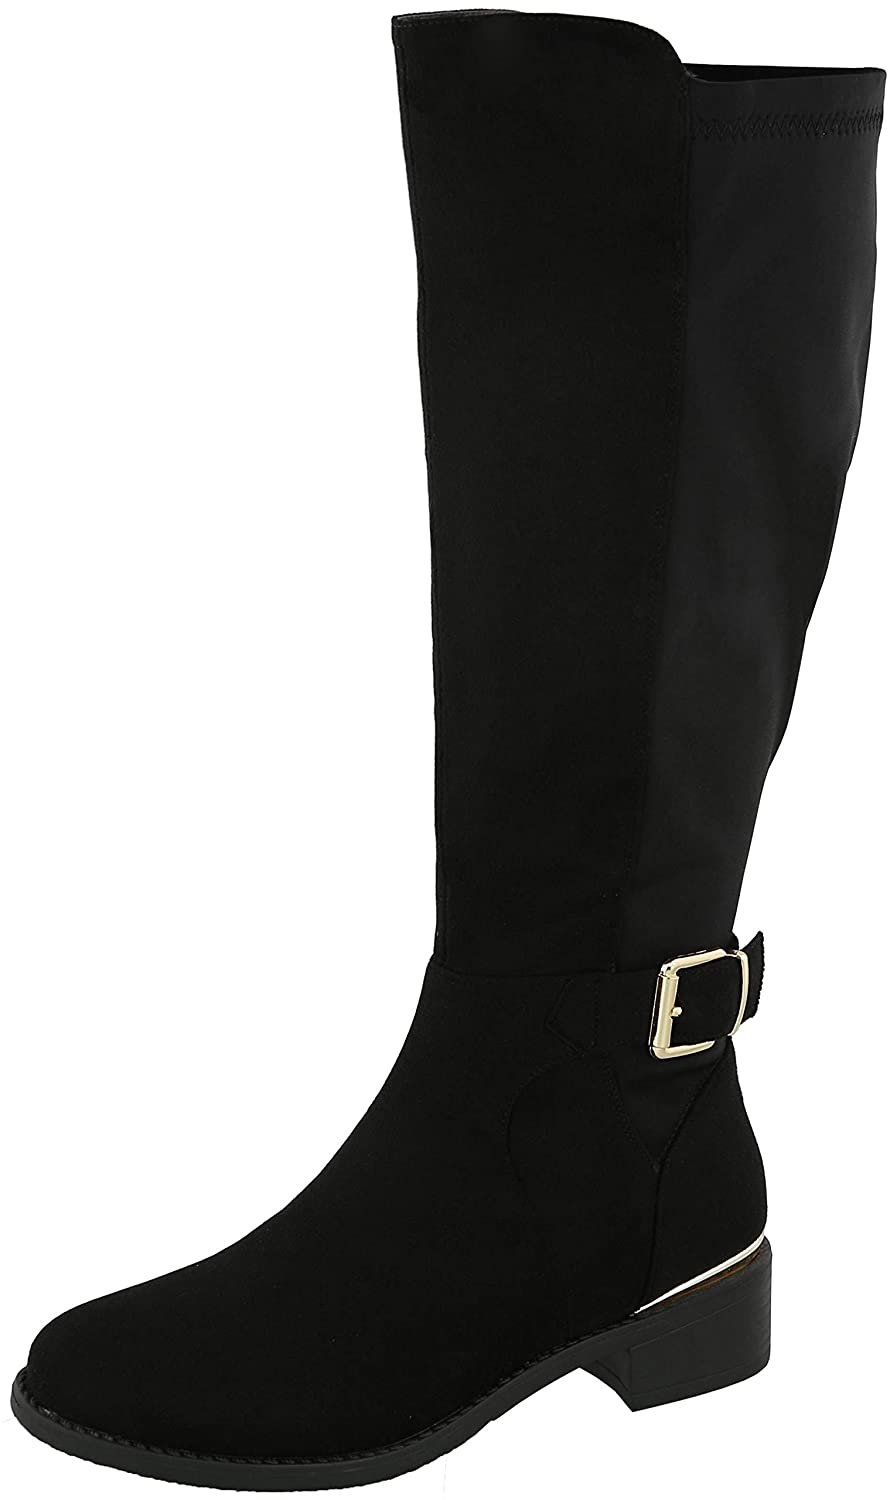 Black Imsu Cambridge Select Women's Round Toe Stretch Low Heel Knee-High Riding Boot